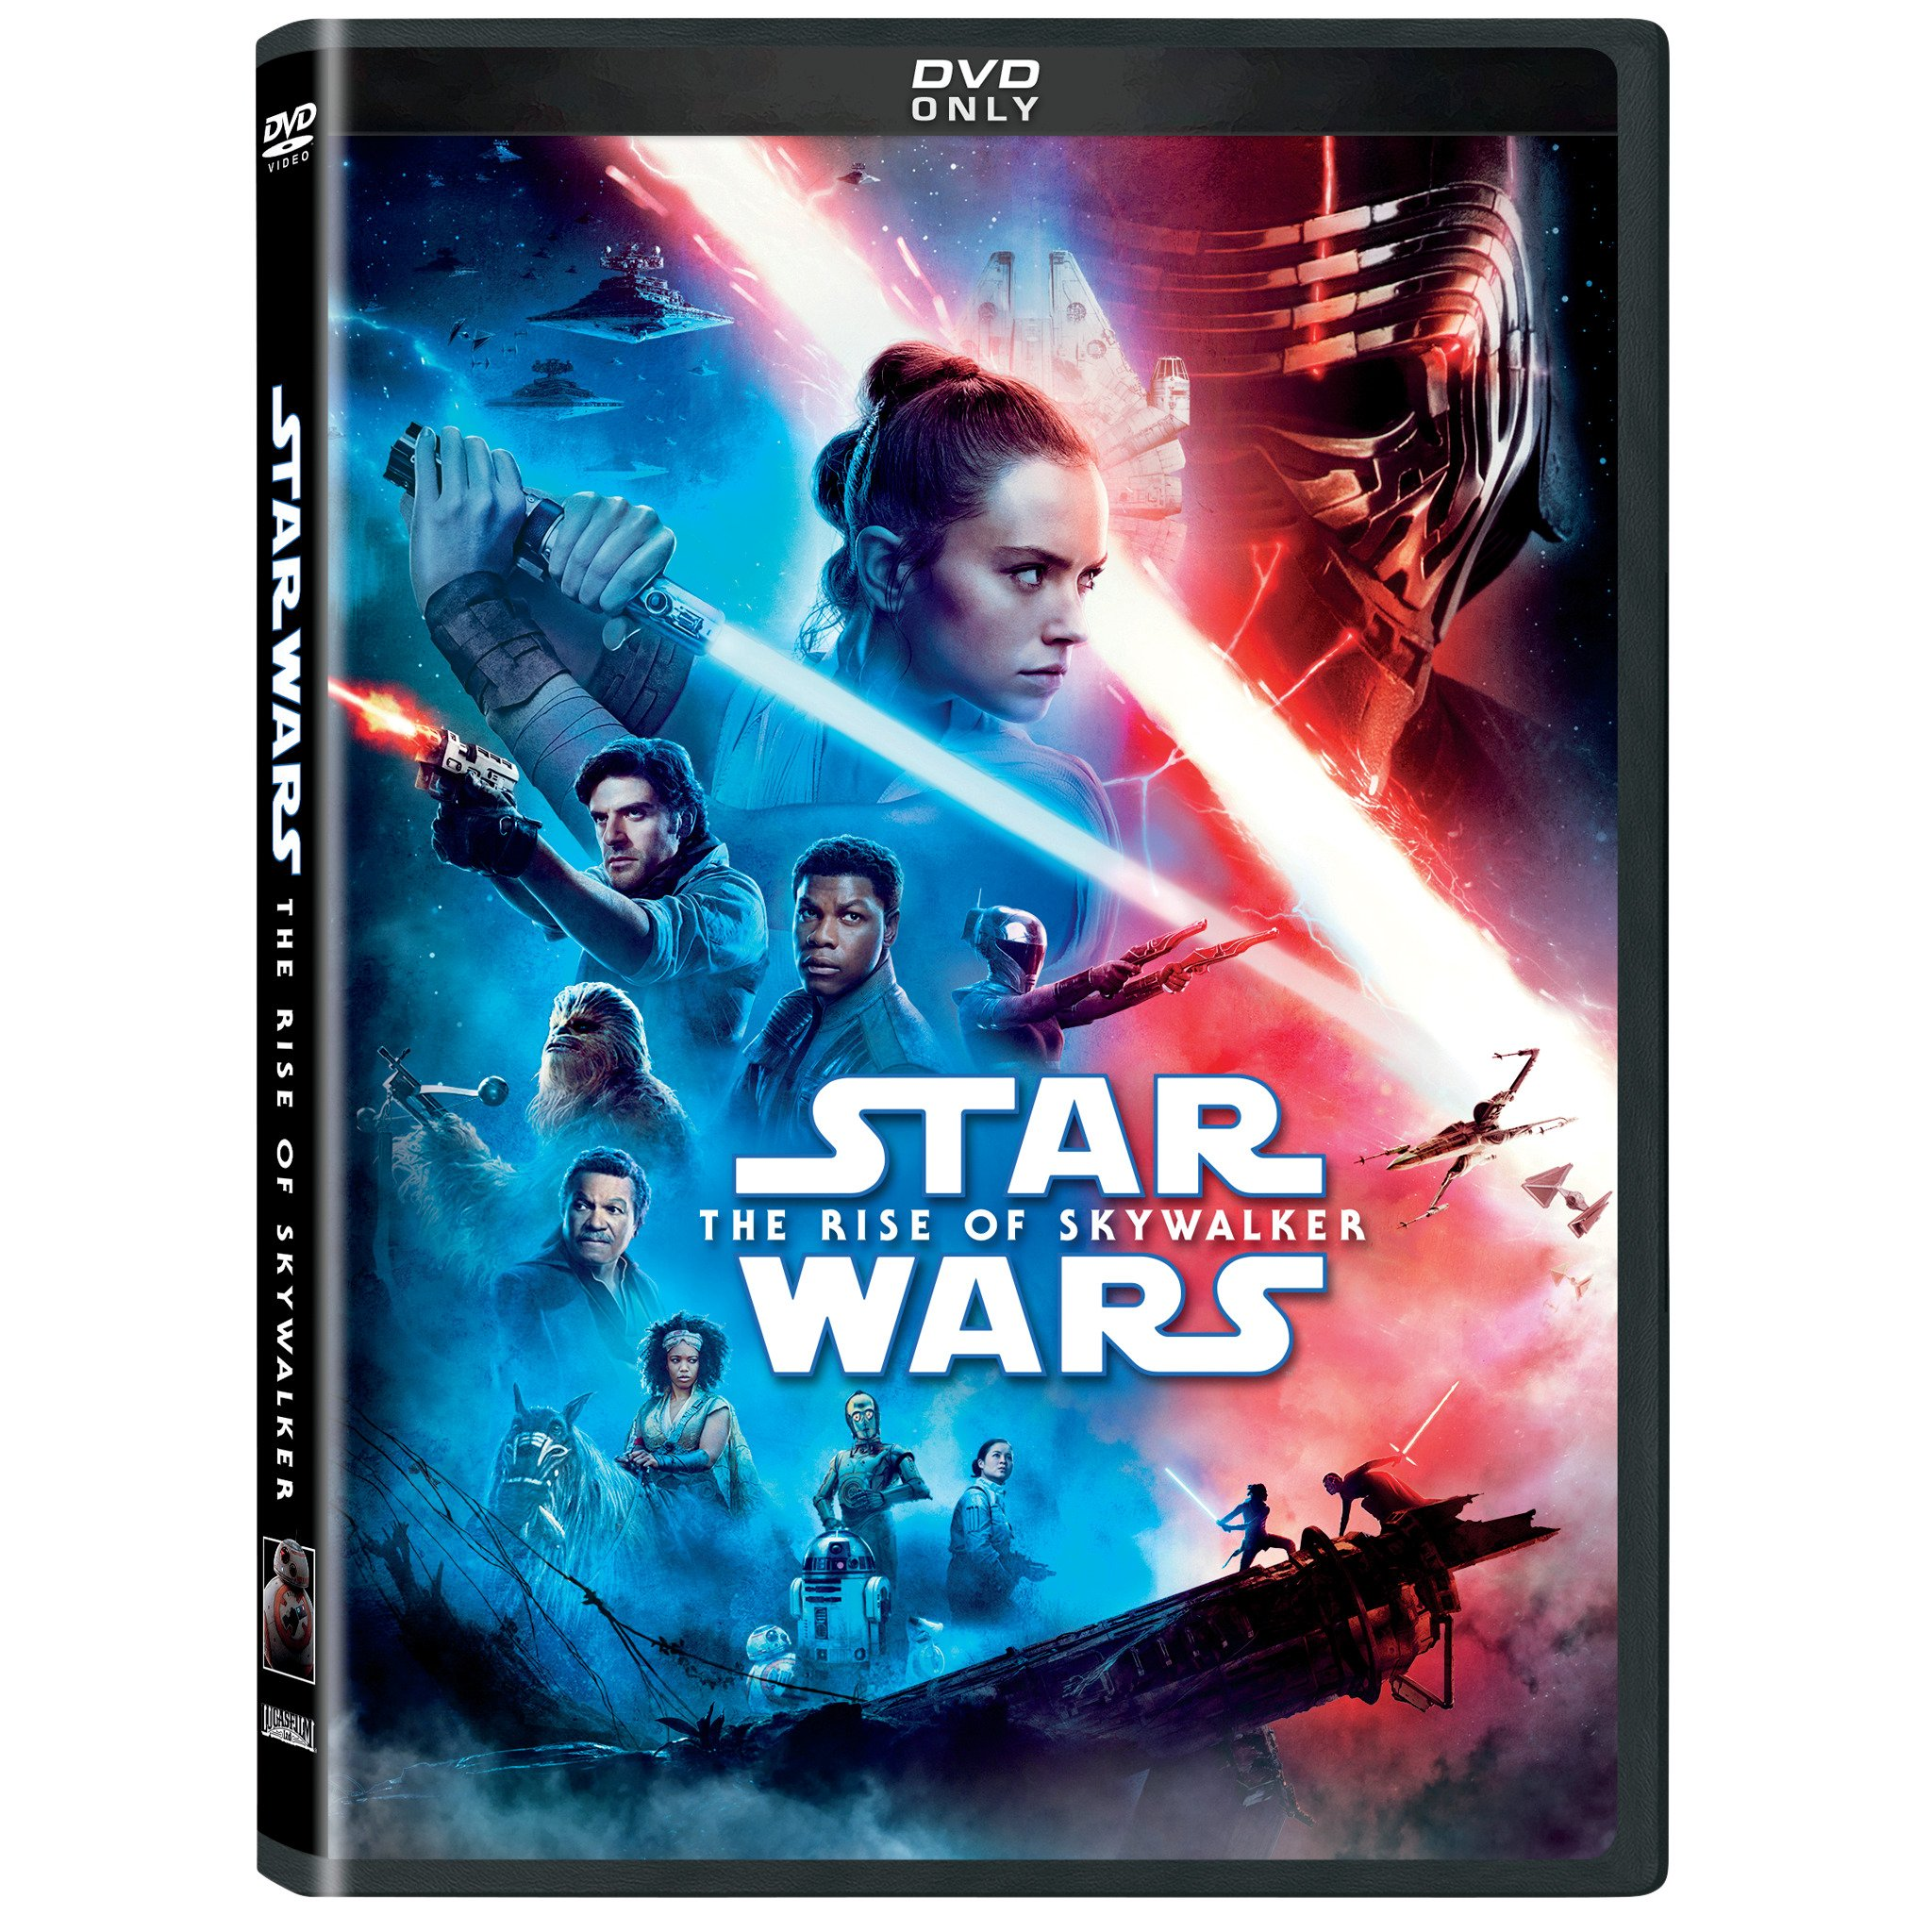 Disney Star Wars The Rise Of Skywalker Dvd Shop Movies At H E B